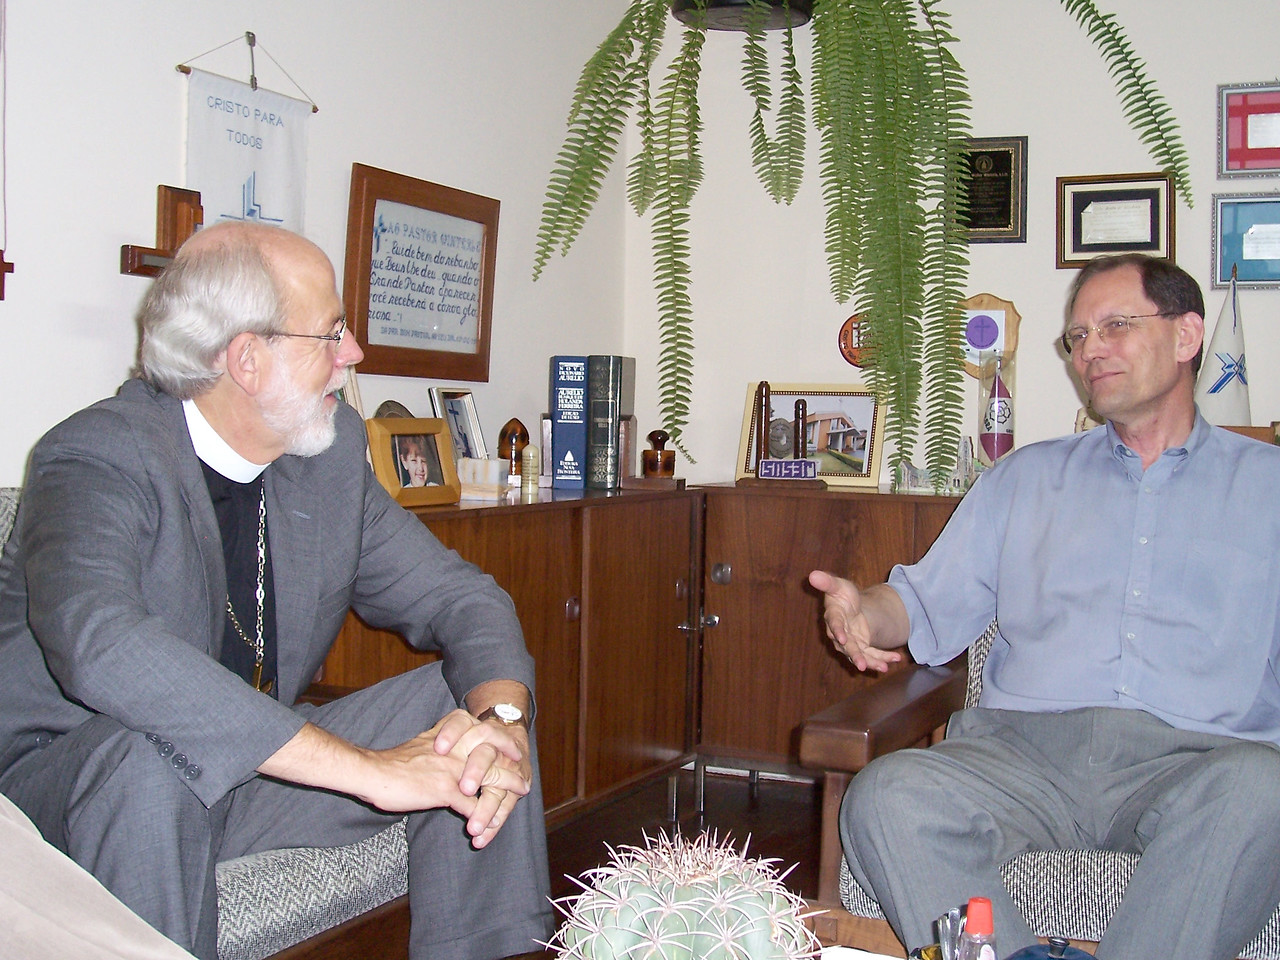 The Rev. Mark S. Hanson (left), LWF president and ELCA presiding bishop, met Oct. 13 with the Rev. Carlos Walter Winterle, president of the Igreja Evangélica Luterana do Brasil (Evangelical Lutheran Church of Brazil) -- a fellowship of the Lutheran Church-Missouri Synod.